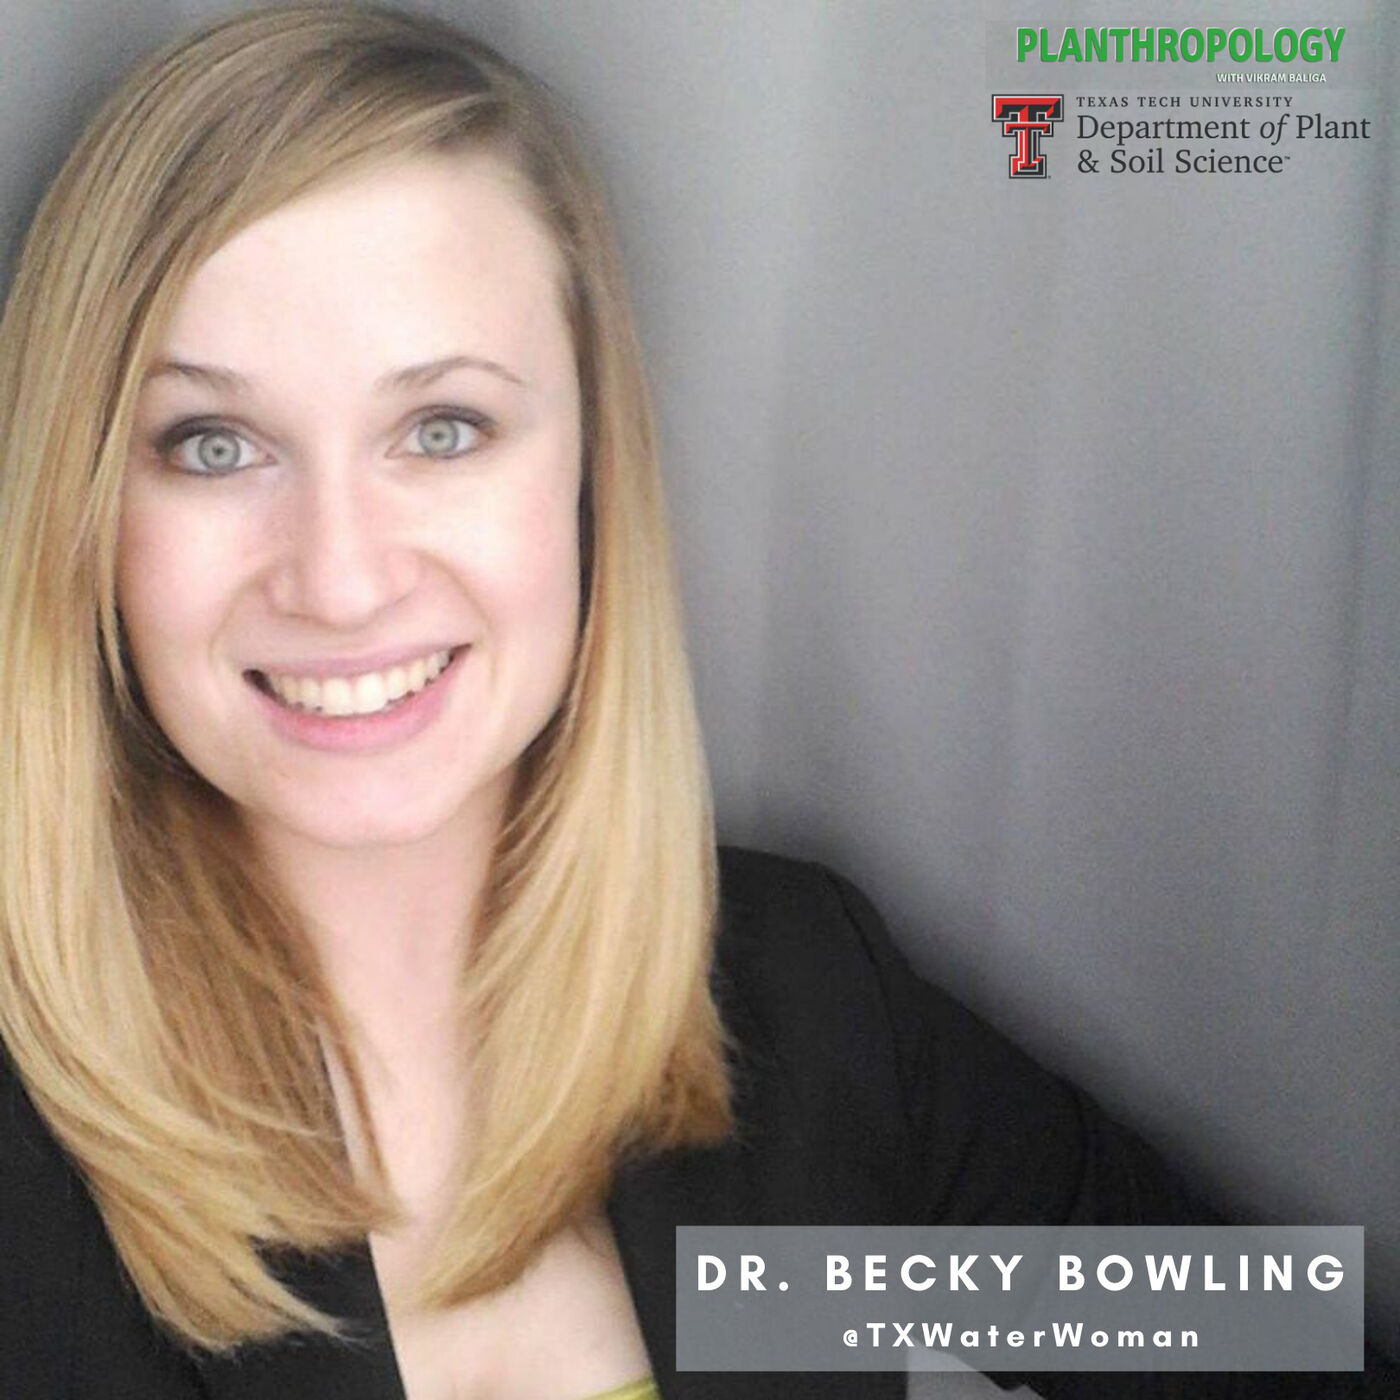 20. Influencing Conservation, Finding Balance, and the Connectedness of Everything w/ Dr. Becky Bowling